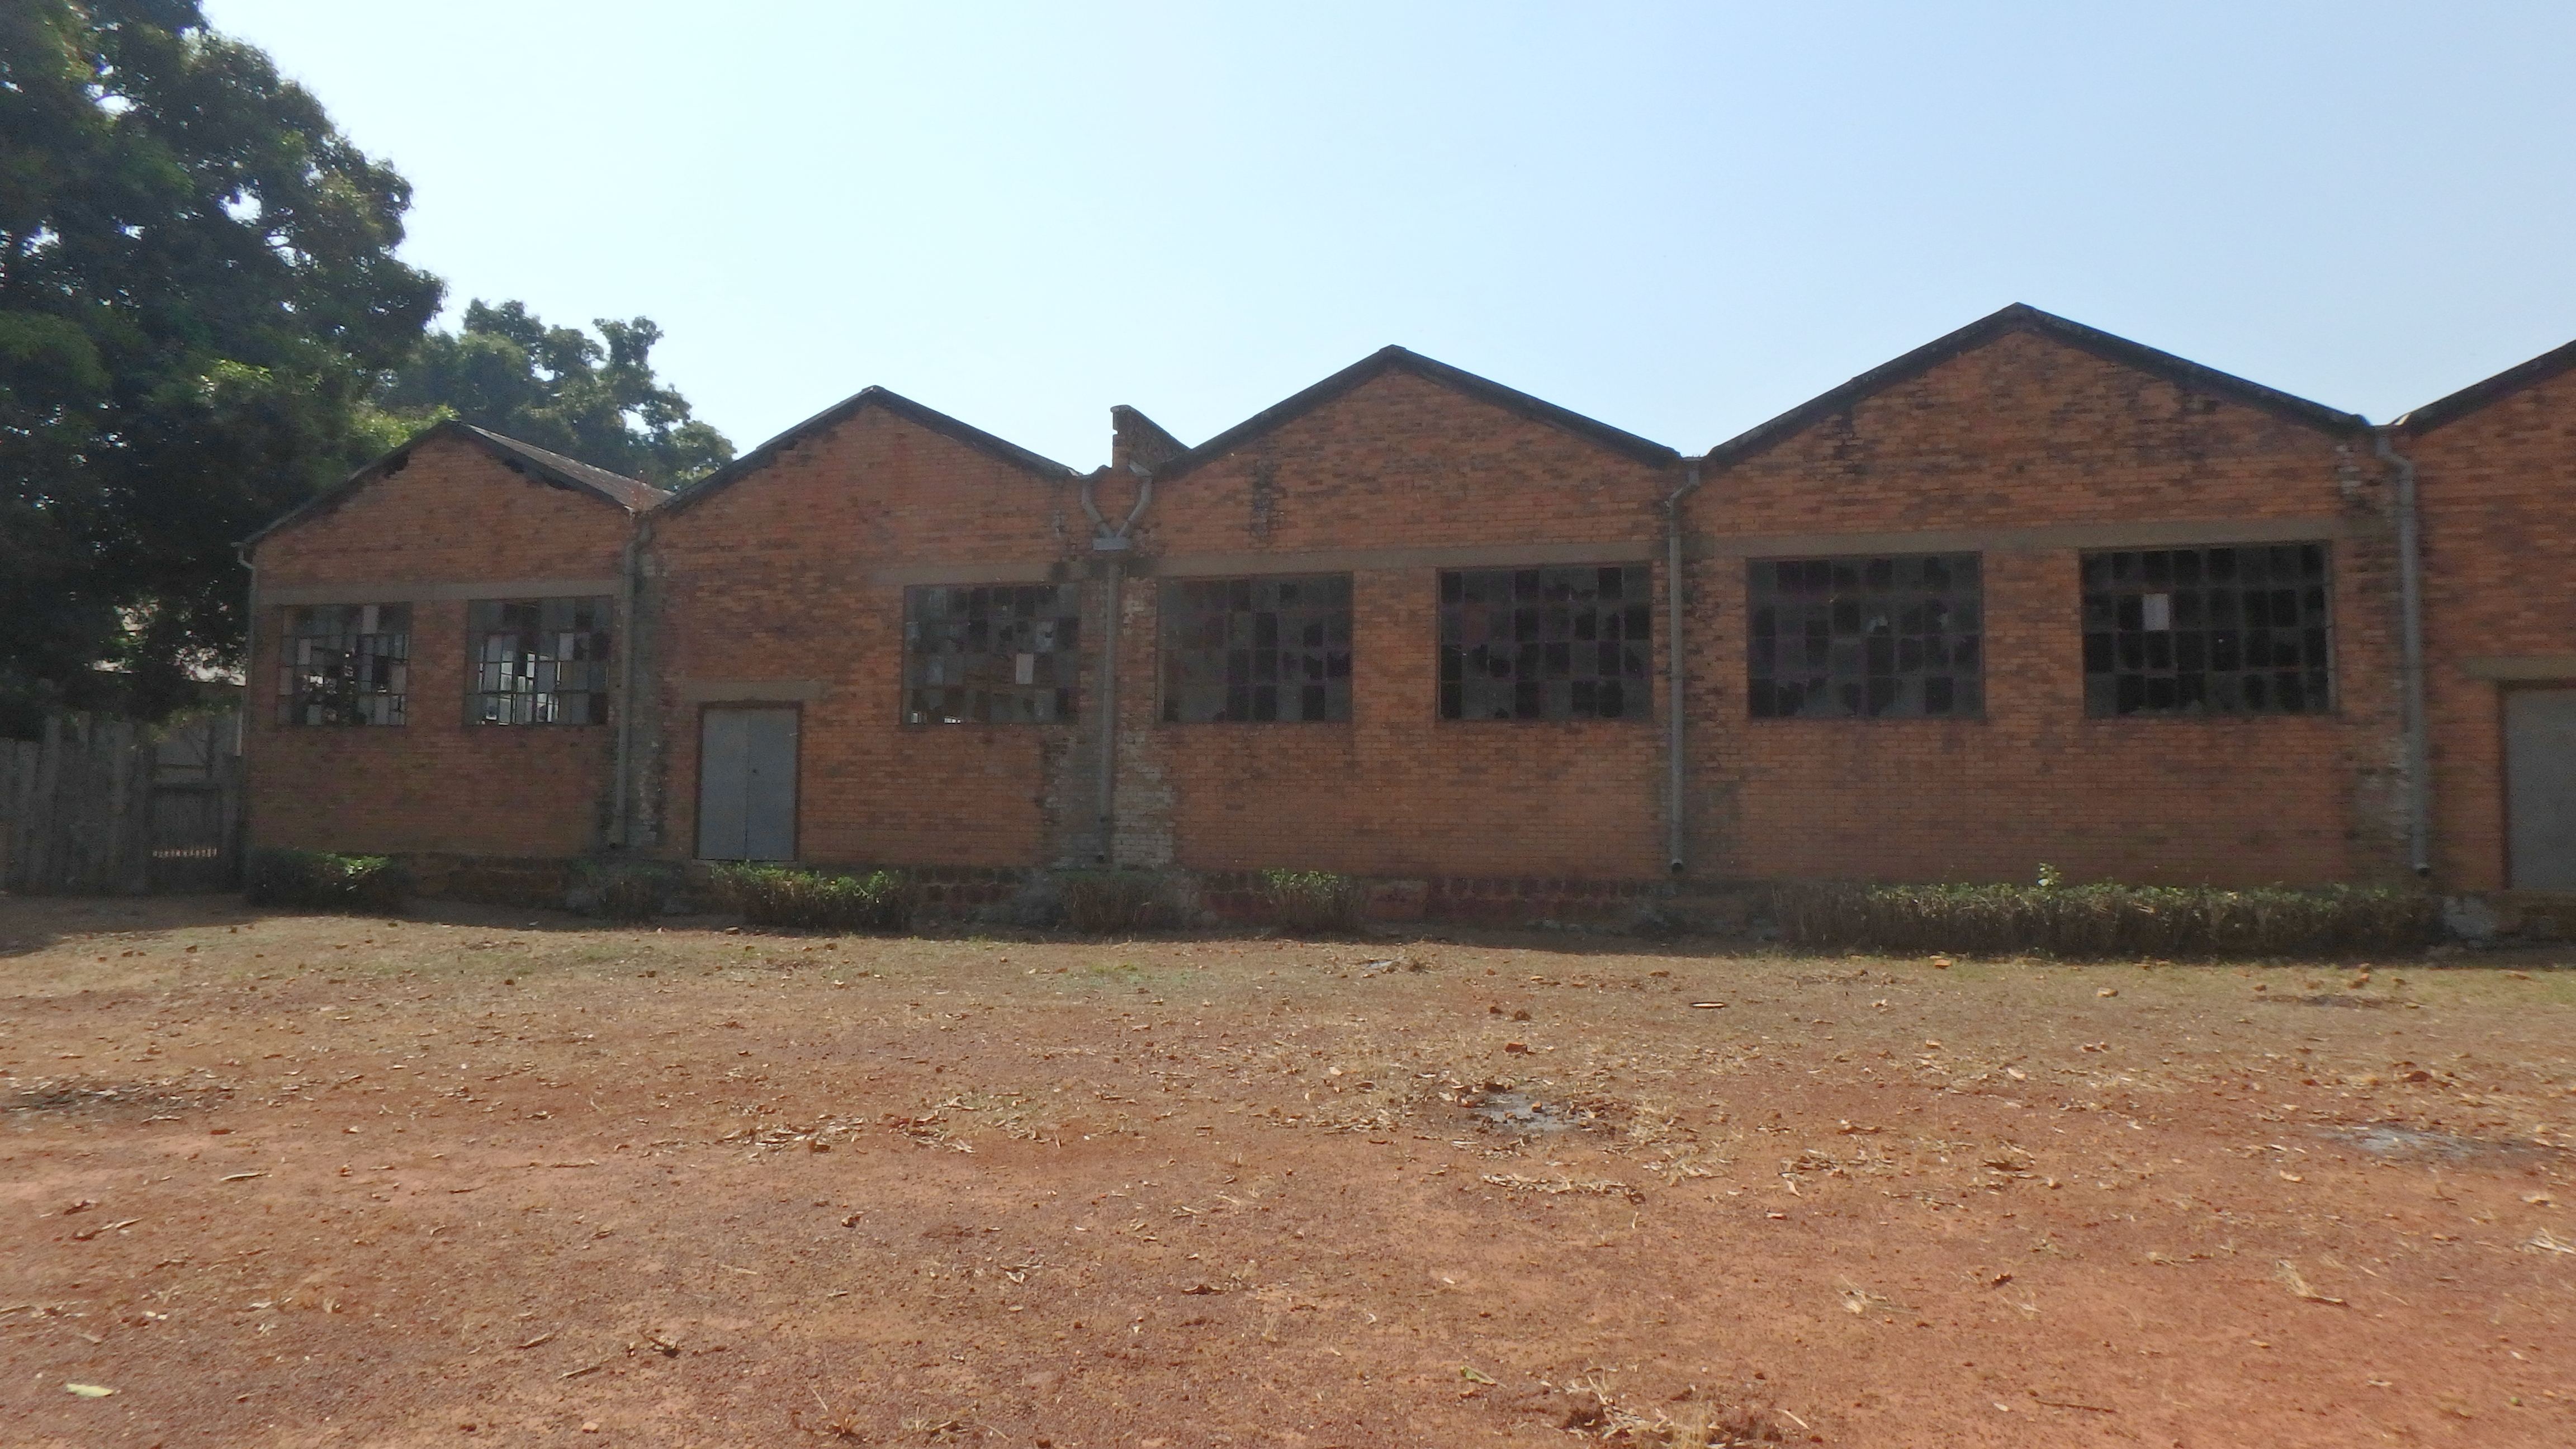 Emergency 5 171 creature factory - Cotton Factory In Nzara South Sudan Where The First Outbreak Occurred